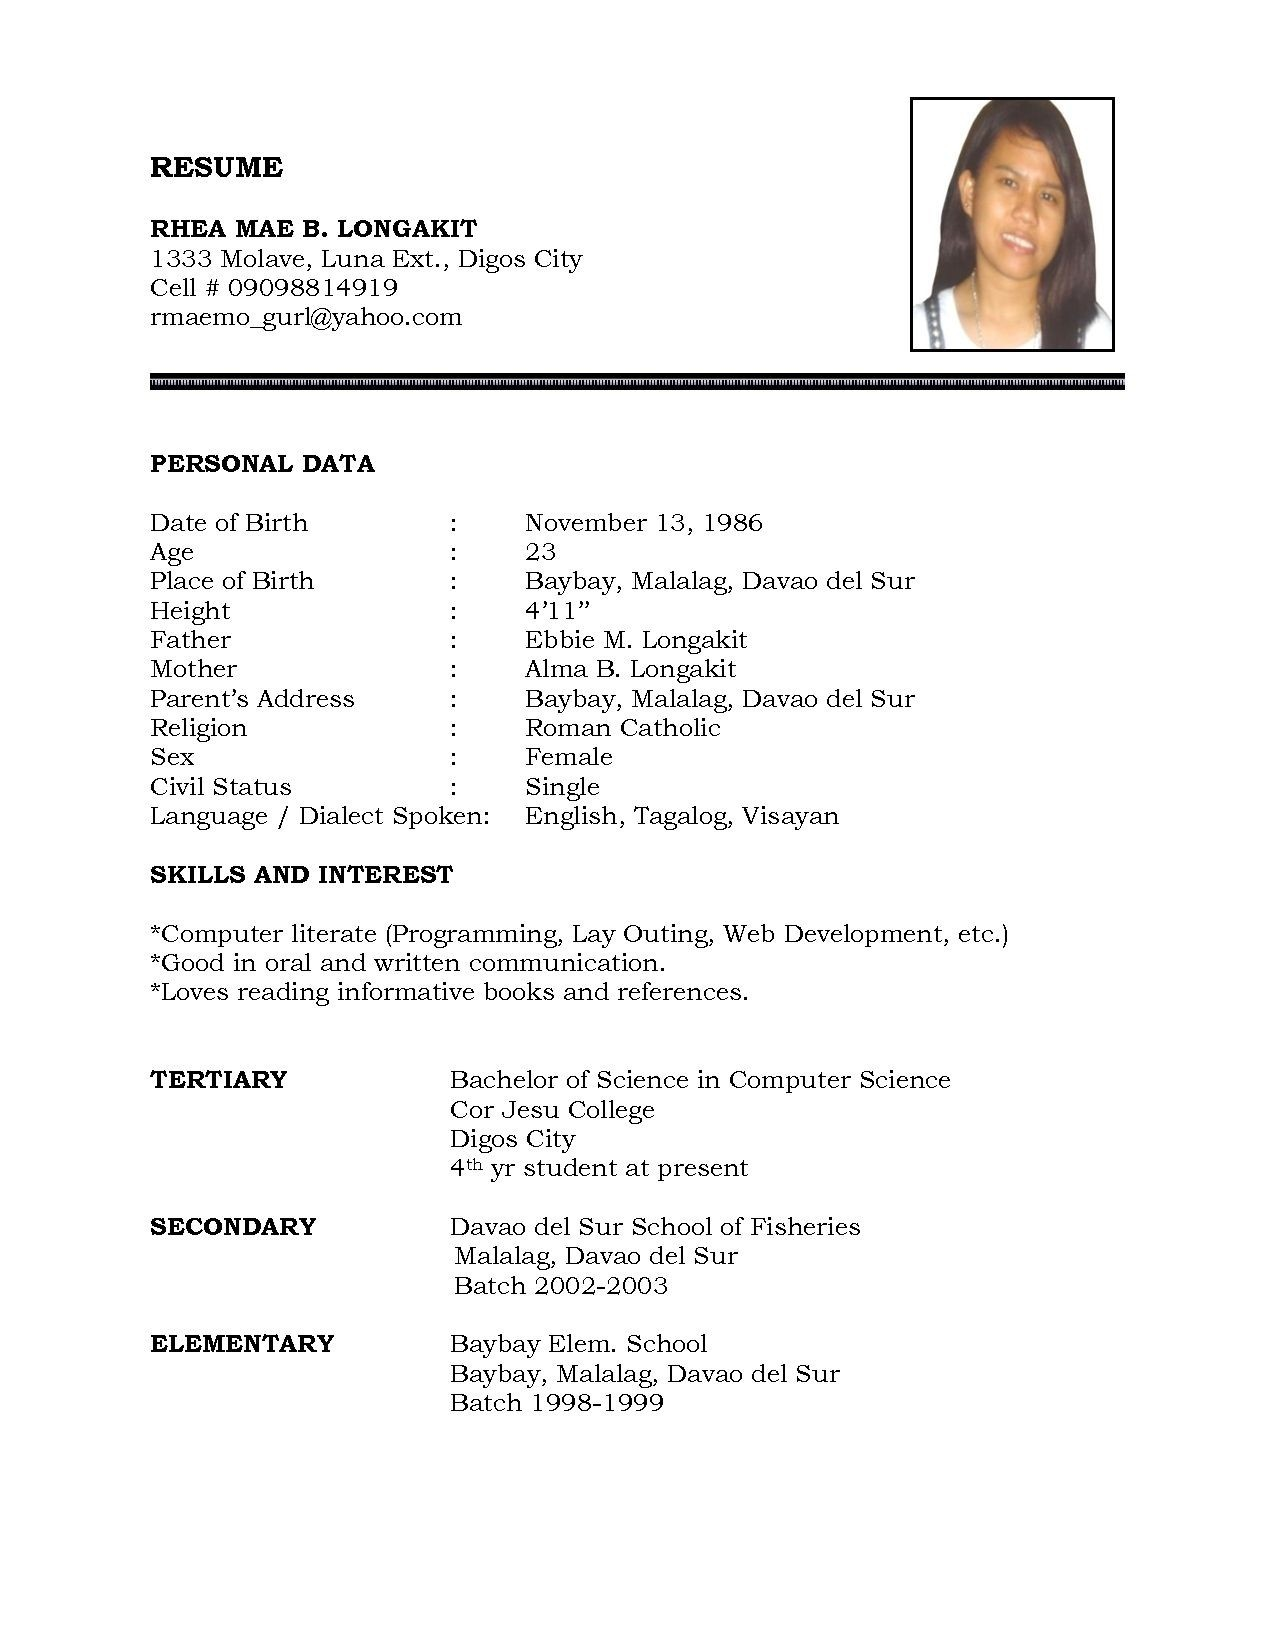 Simple Resume Format In Word File Download